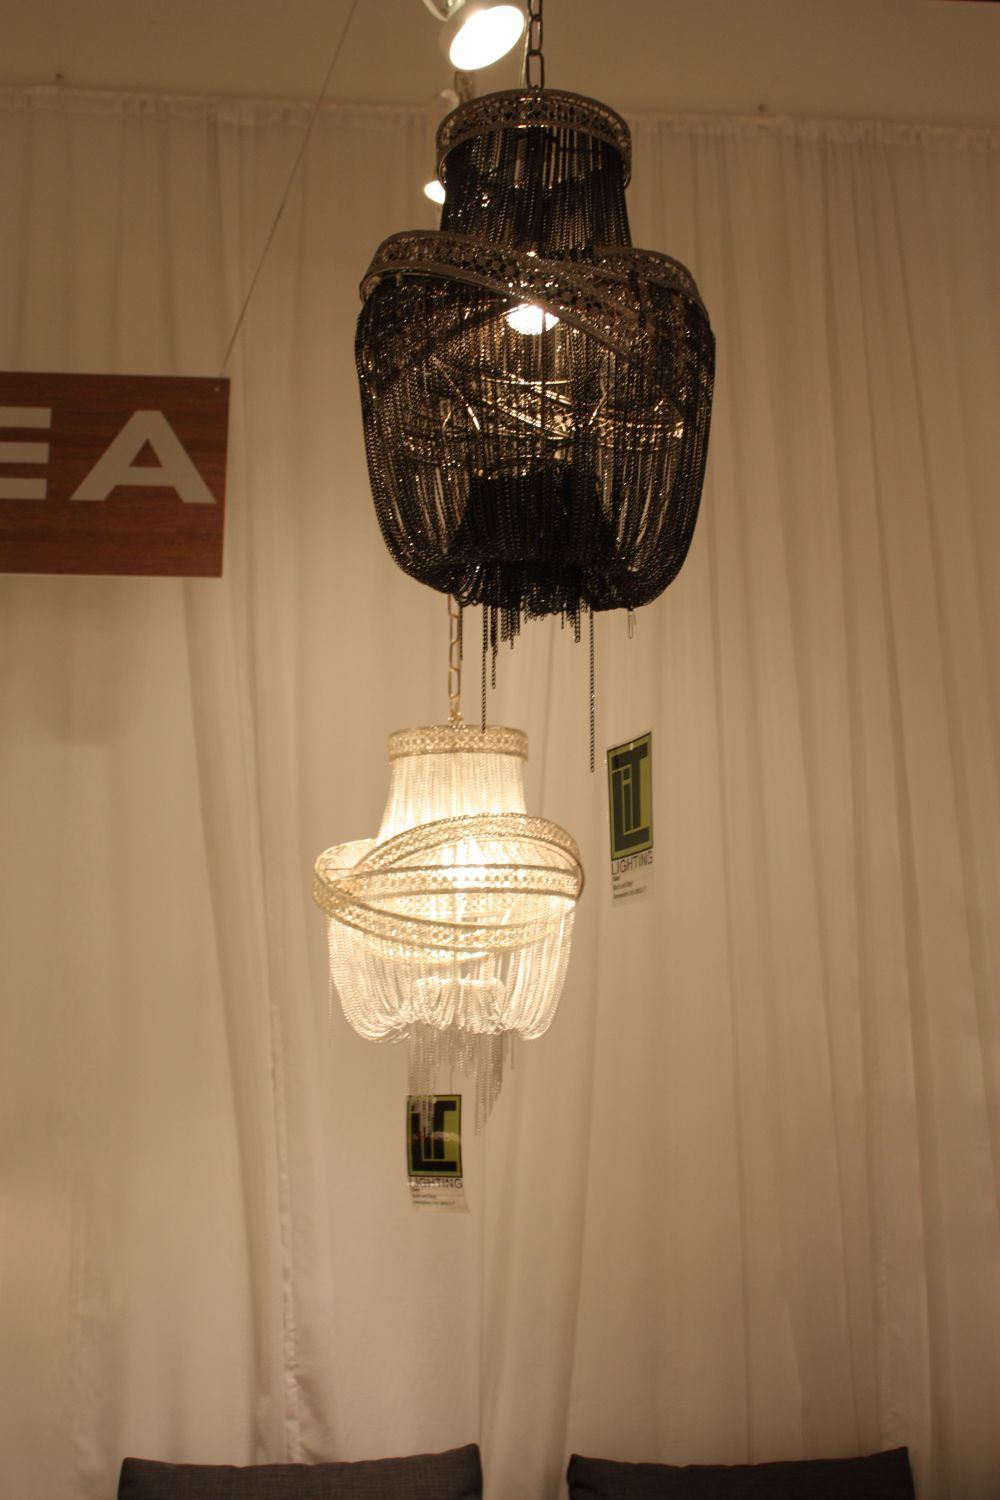 Add a bit of drama to your life with a black chandelier pangea home clara chandelier aloadofball Gallery